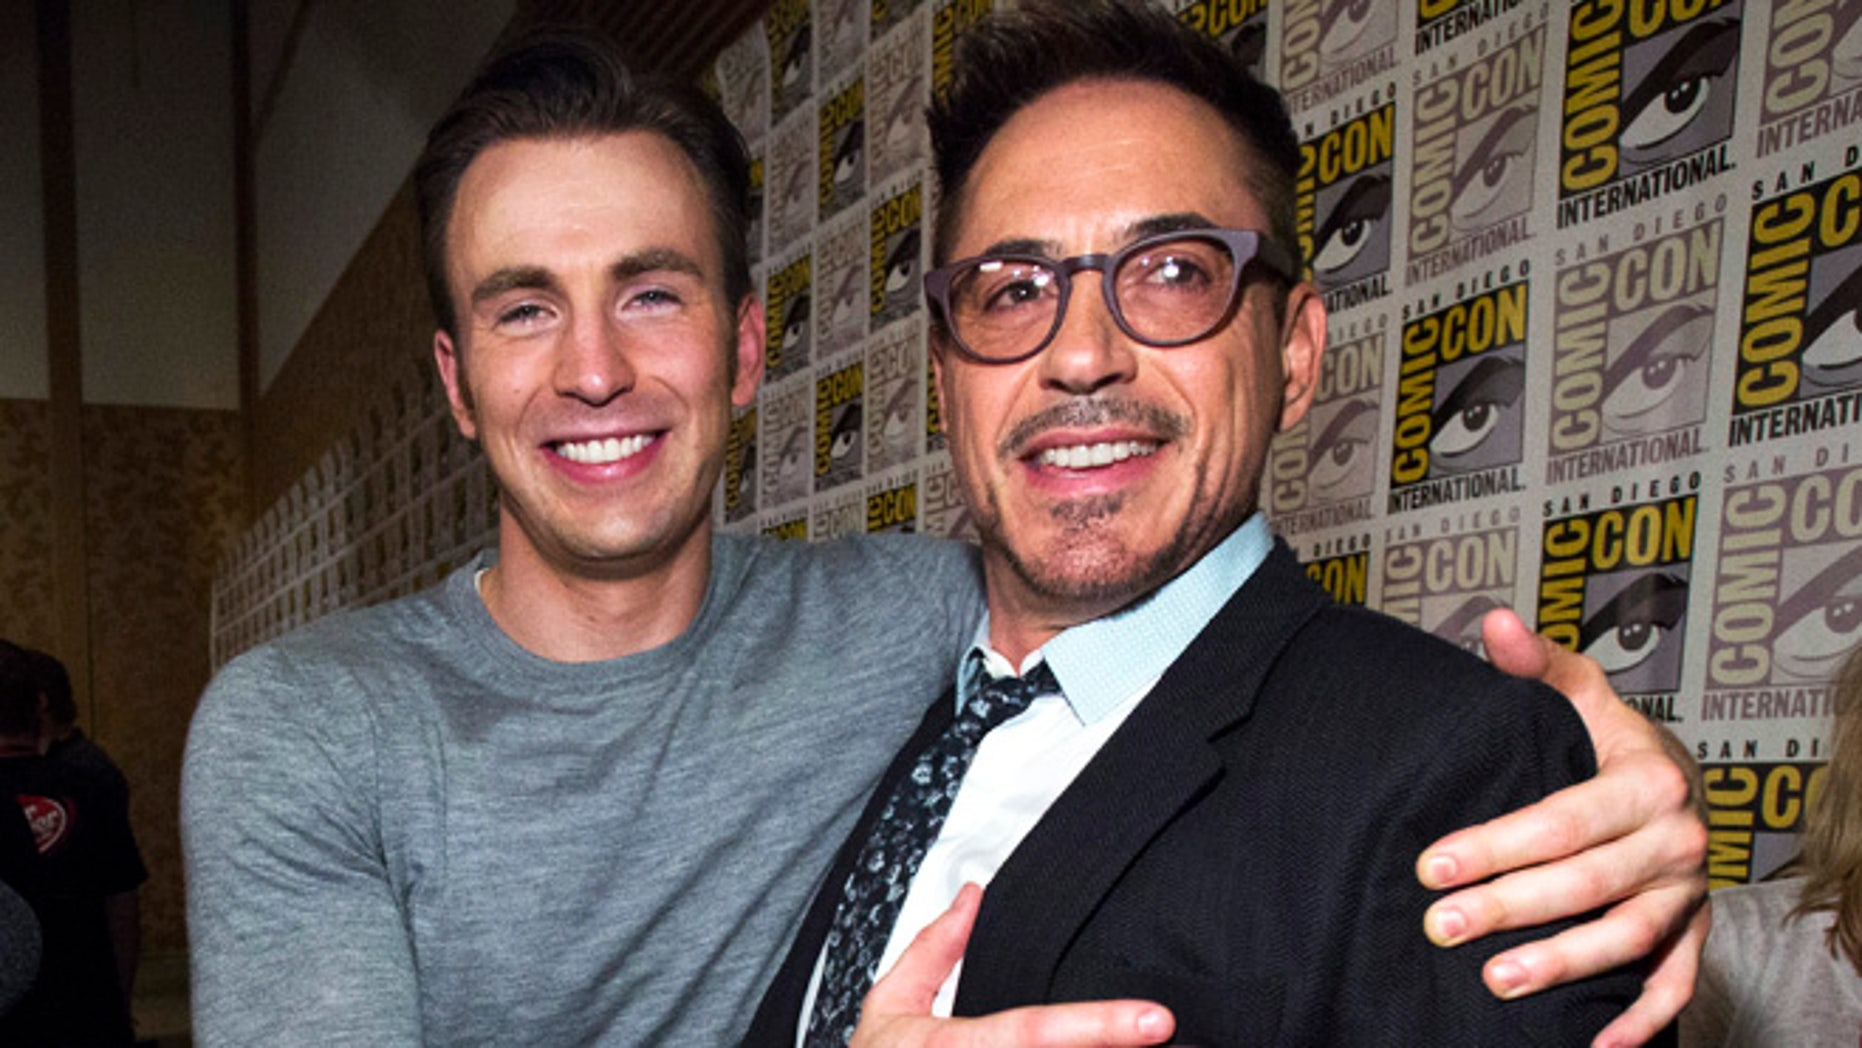 "Cast members Robert Downey Jr. (R) and Chris Evans pose at a press line for ""Avengers: Age of Ultron"" during the 2014 Comic-Con International Convention in San Diego, California July 26, 2014.  REUTERS/Mario Anzuoni (UNITED STATES - Tags: ENTERTAINMENT) - RTR409CY"